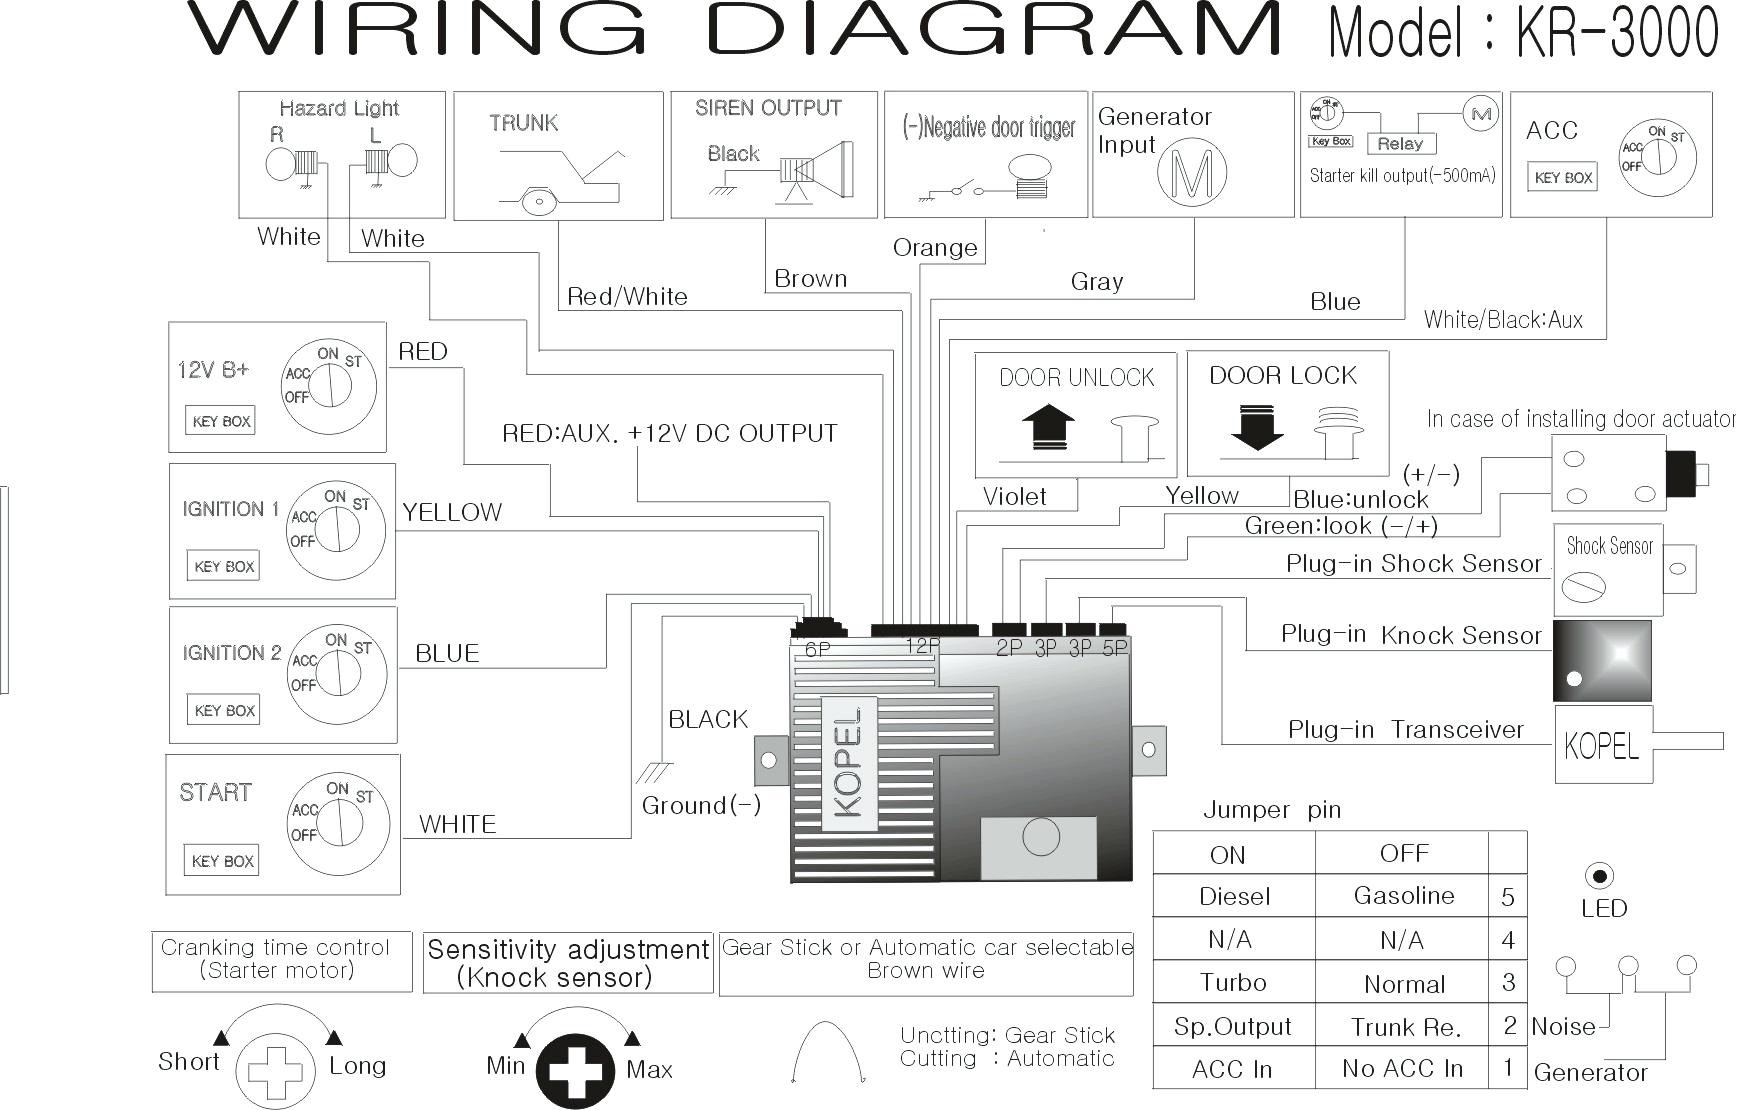 Omega Car Alarm Wiring Diagrams Amazing Viper Car Alarm Wiring Diagram Everything You Need Of Omega Car Alarm Wiring Diagrams Viper 5706 Wiring Diagram Free Download Wiring Diagram Schematic